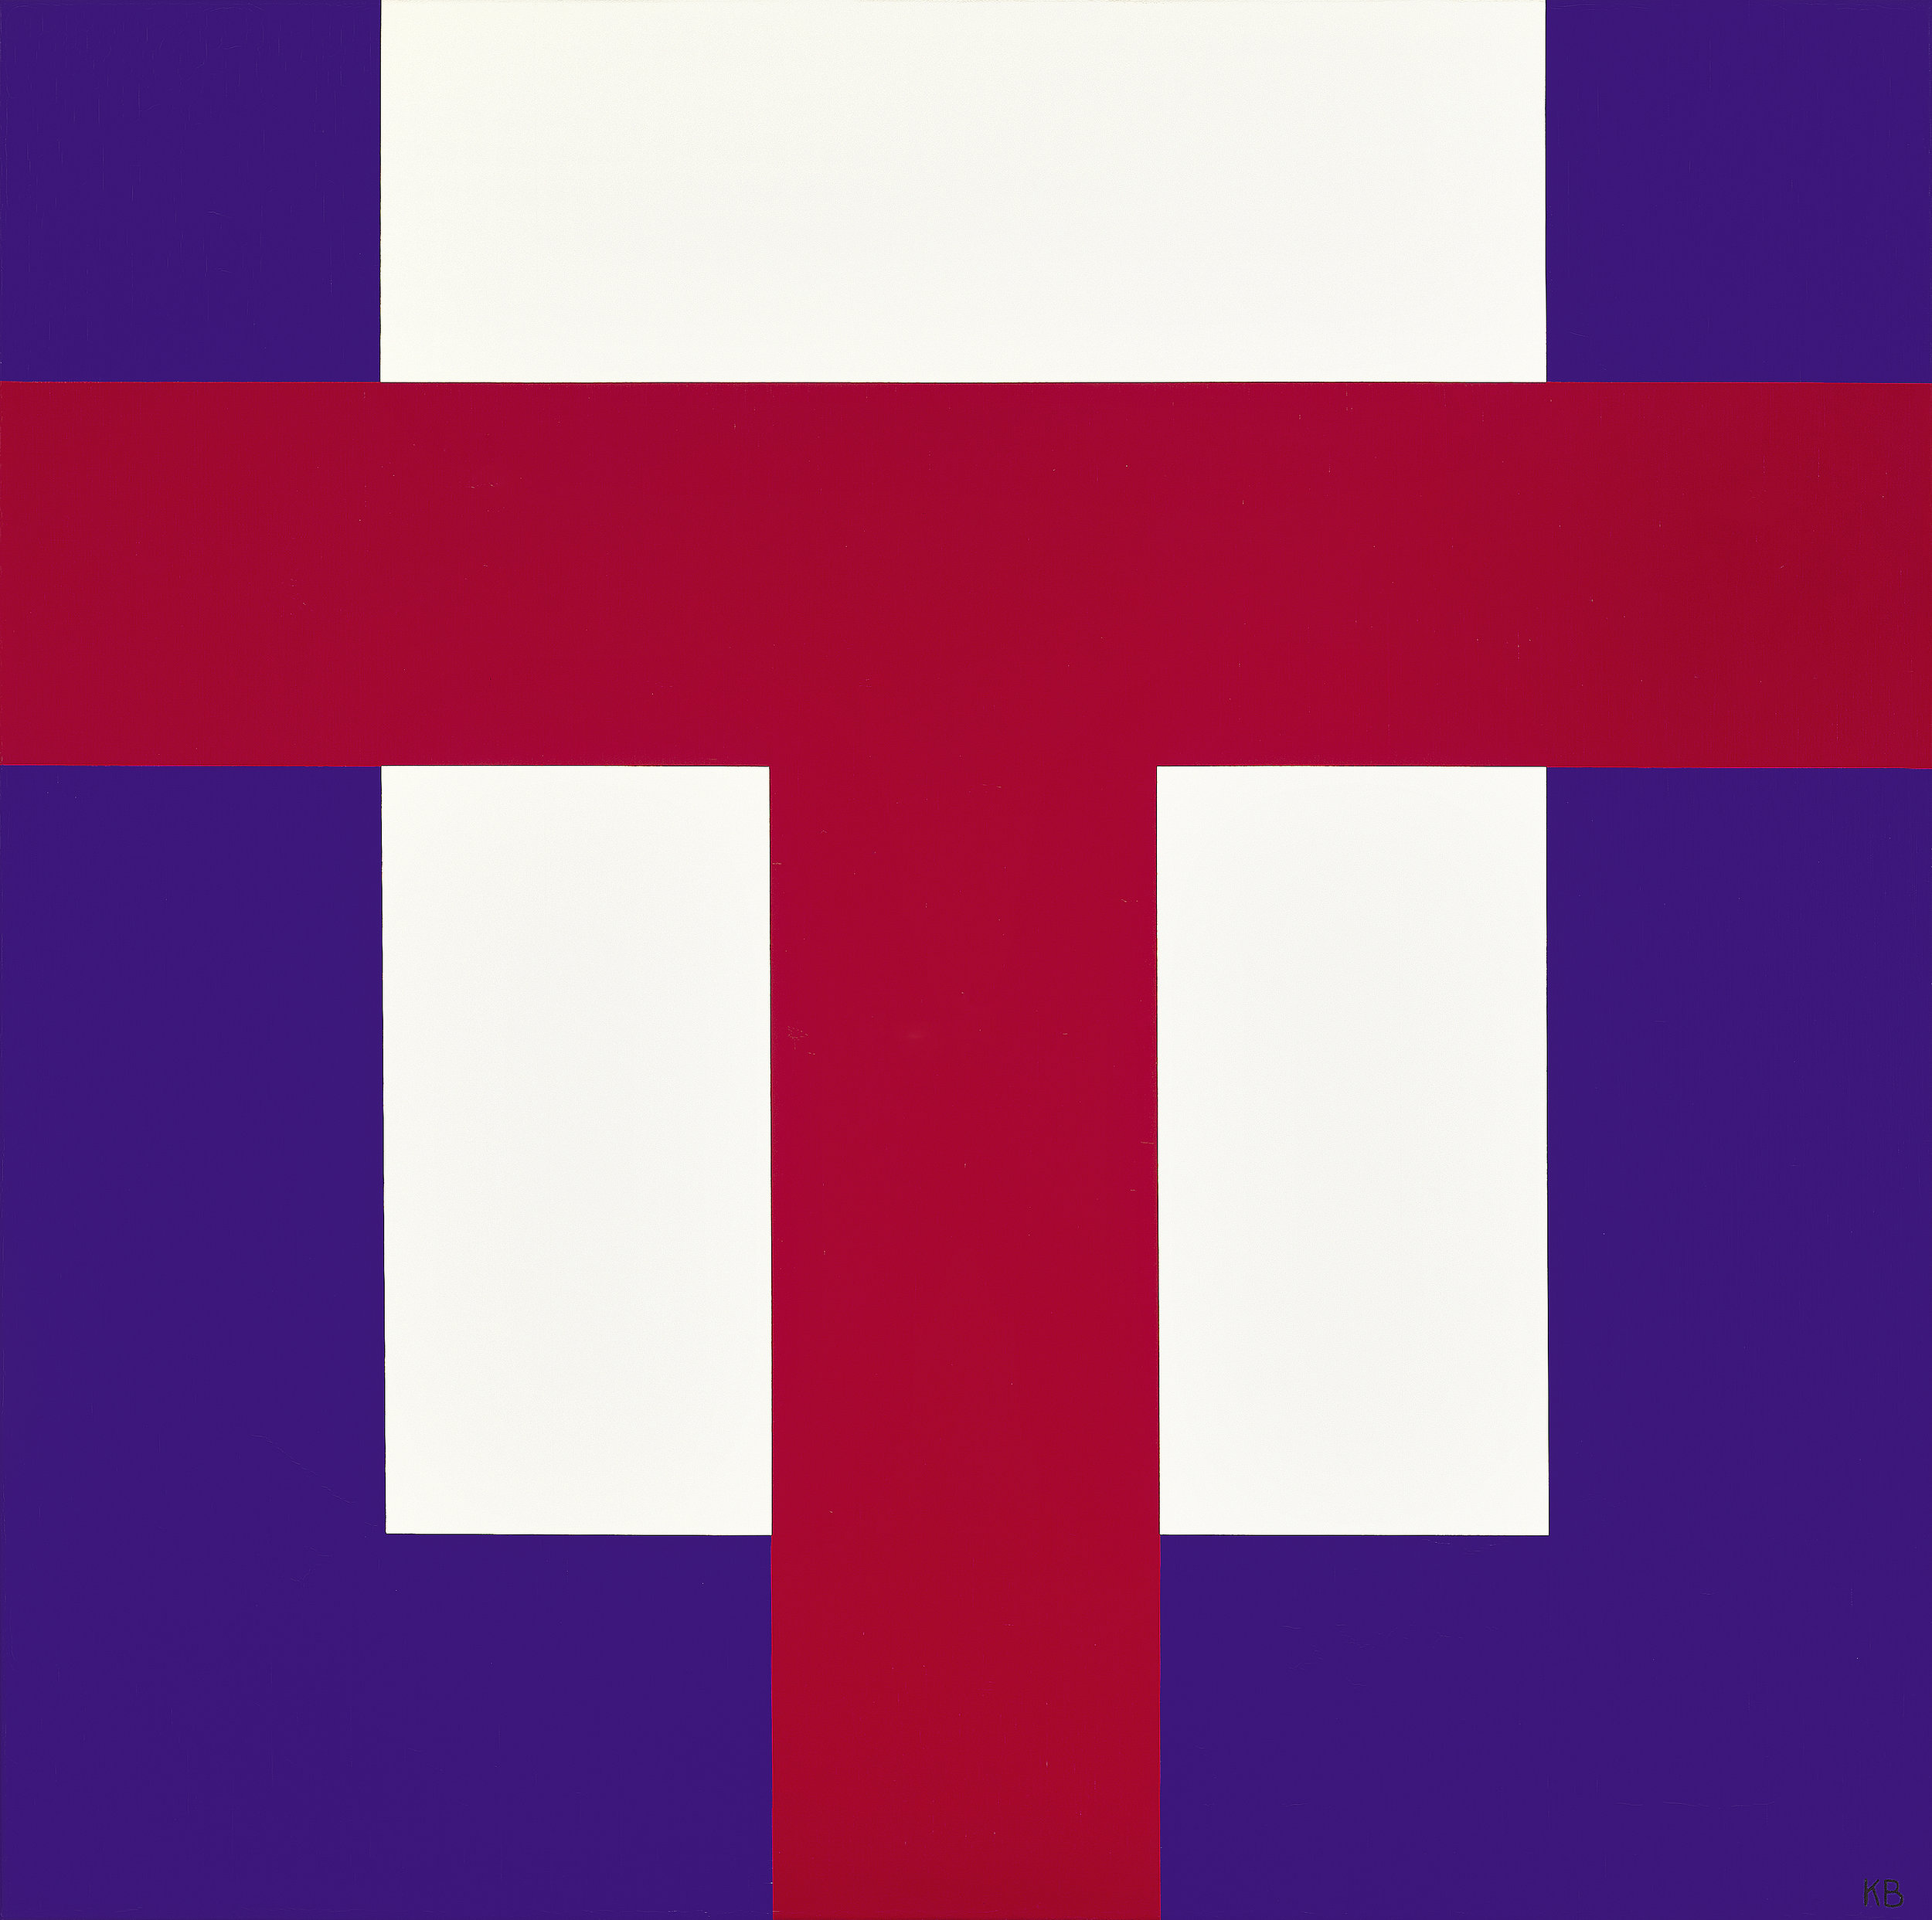 #40 , 1965  oil on canvas 42 x 42 inches; 106.7 x 106.7 centimeters